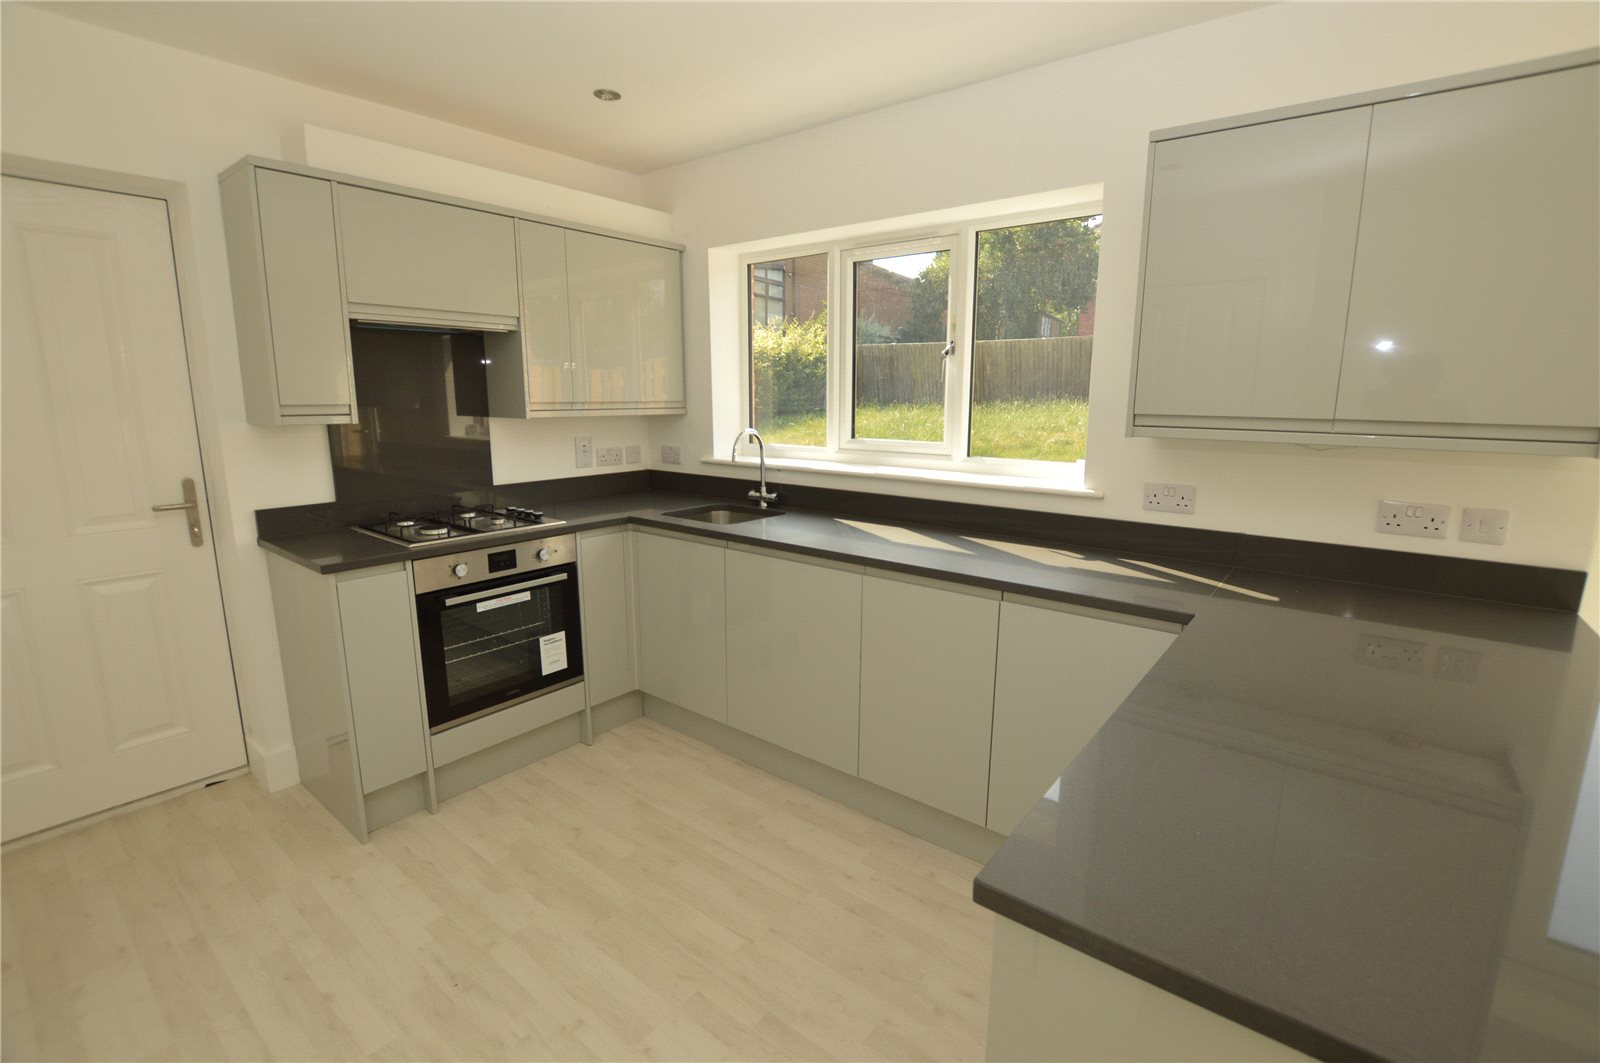 property for sale in rothwell, modern kitchen